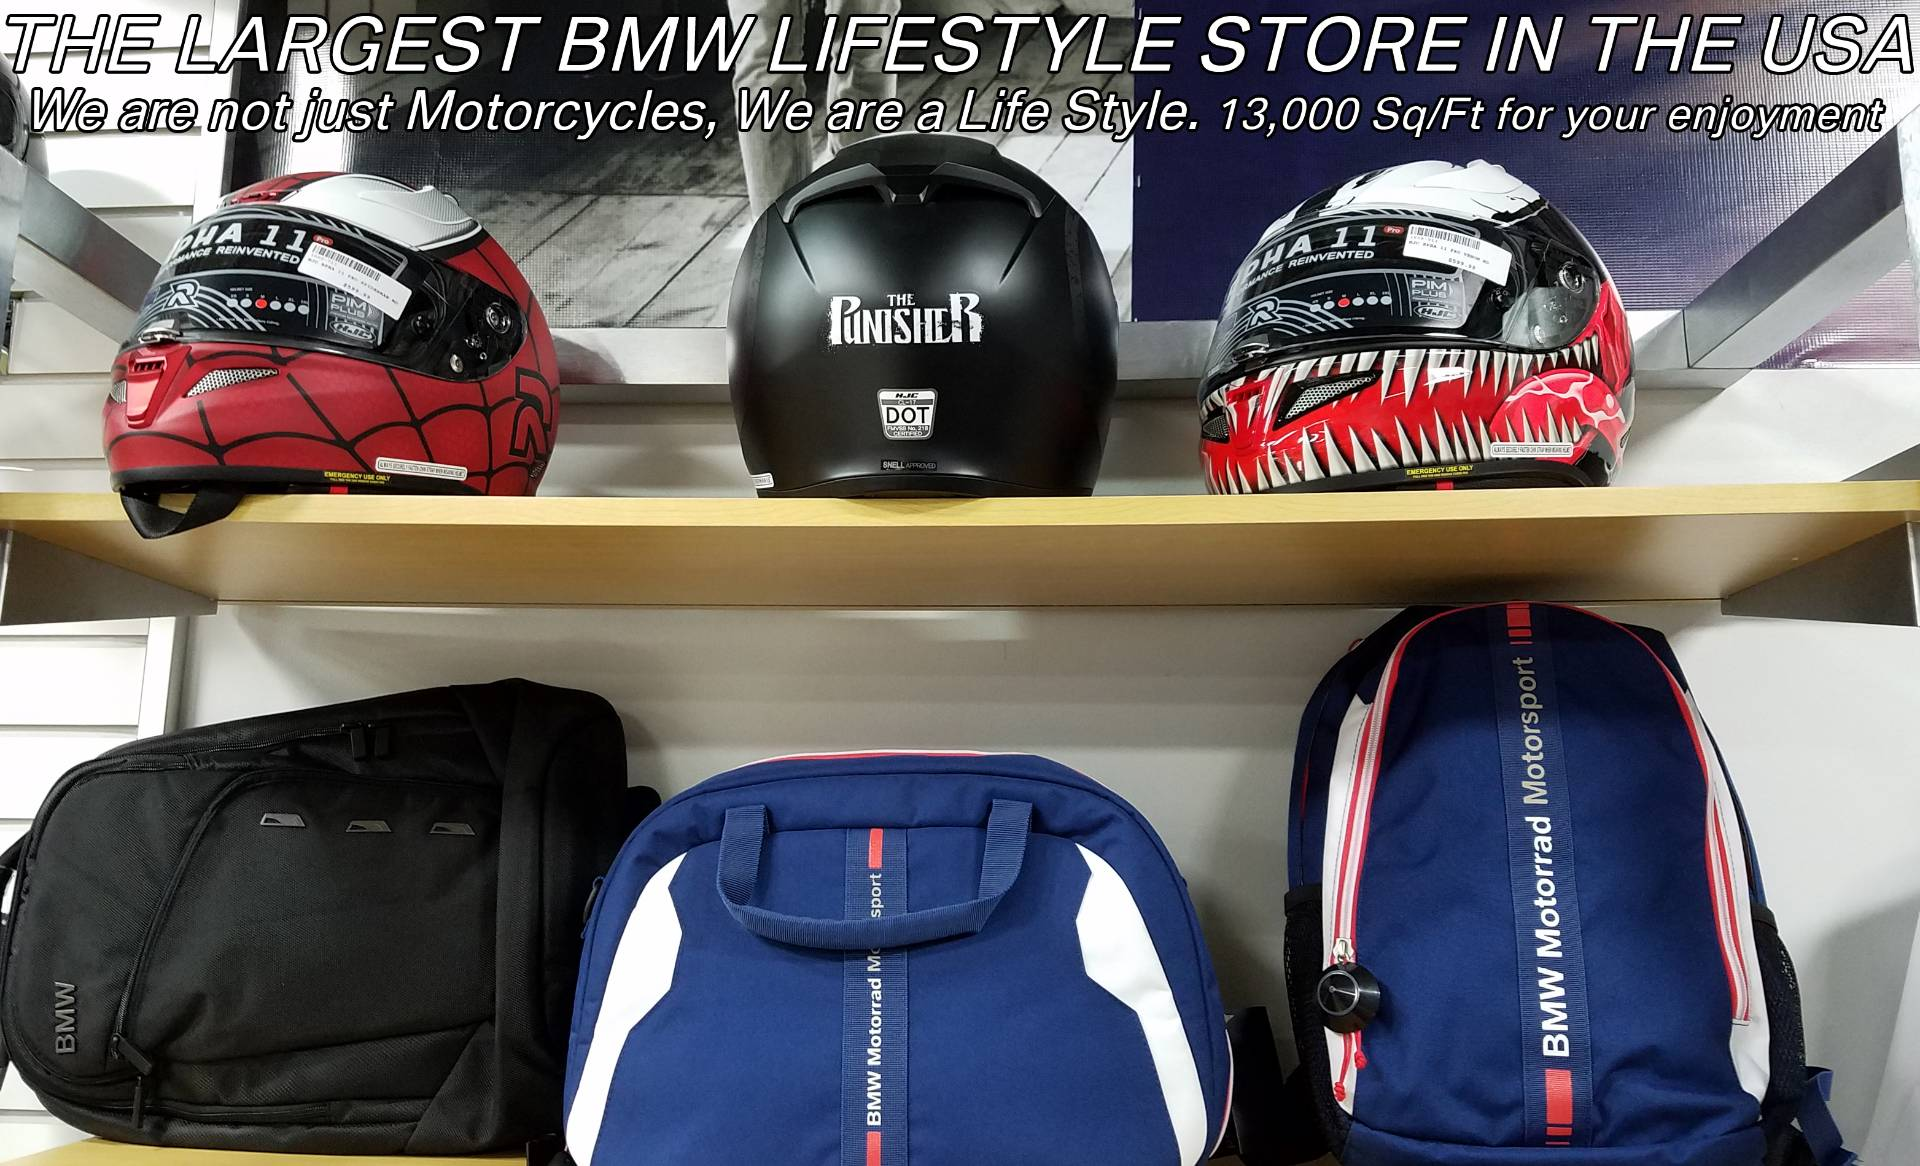 New 2019 BMW F 850 GSA for sale, BMW F 850GSA for sale, BMW Motorcycle F850GSA, new BMW 850 Adventure, Adventure. BMW Motorcycles of Miami, Motorcycles of Miami, Motorcycles Miami, New Motorcycles, Used Motorcycles, pre-owned. #BMWMotorcyclesOfMiami #MotorcyclesOfMiami #MotorcyclesMiami - Photo 39